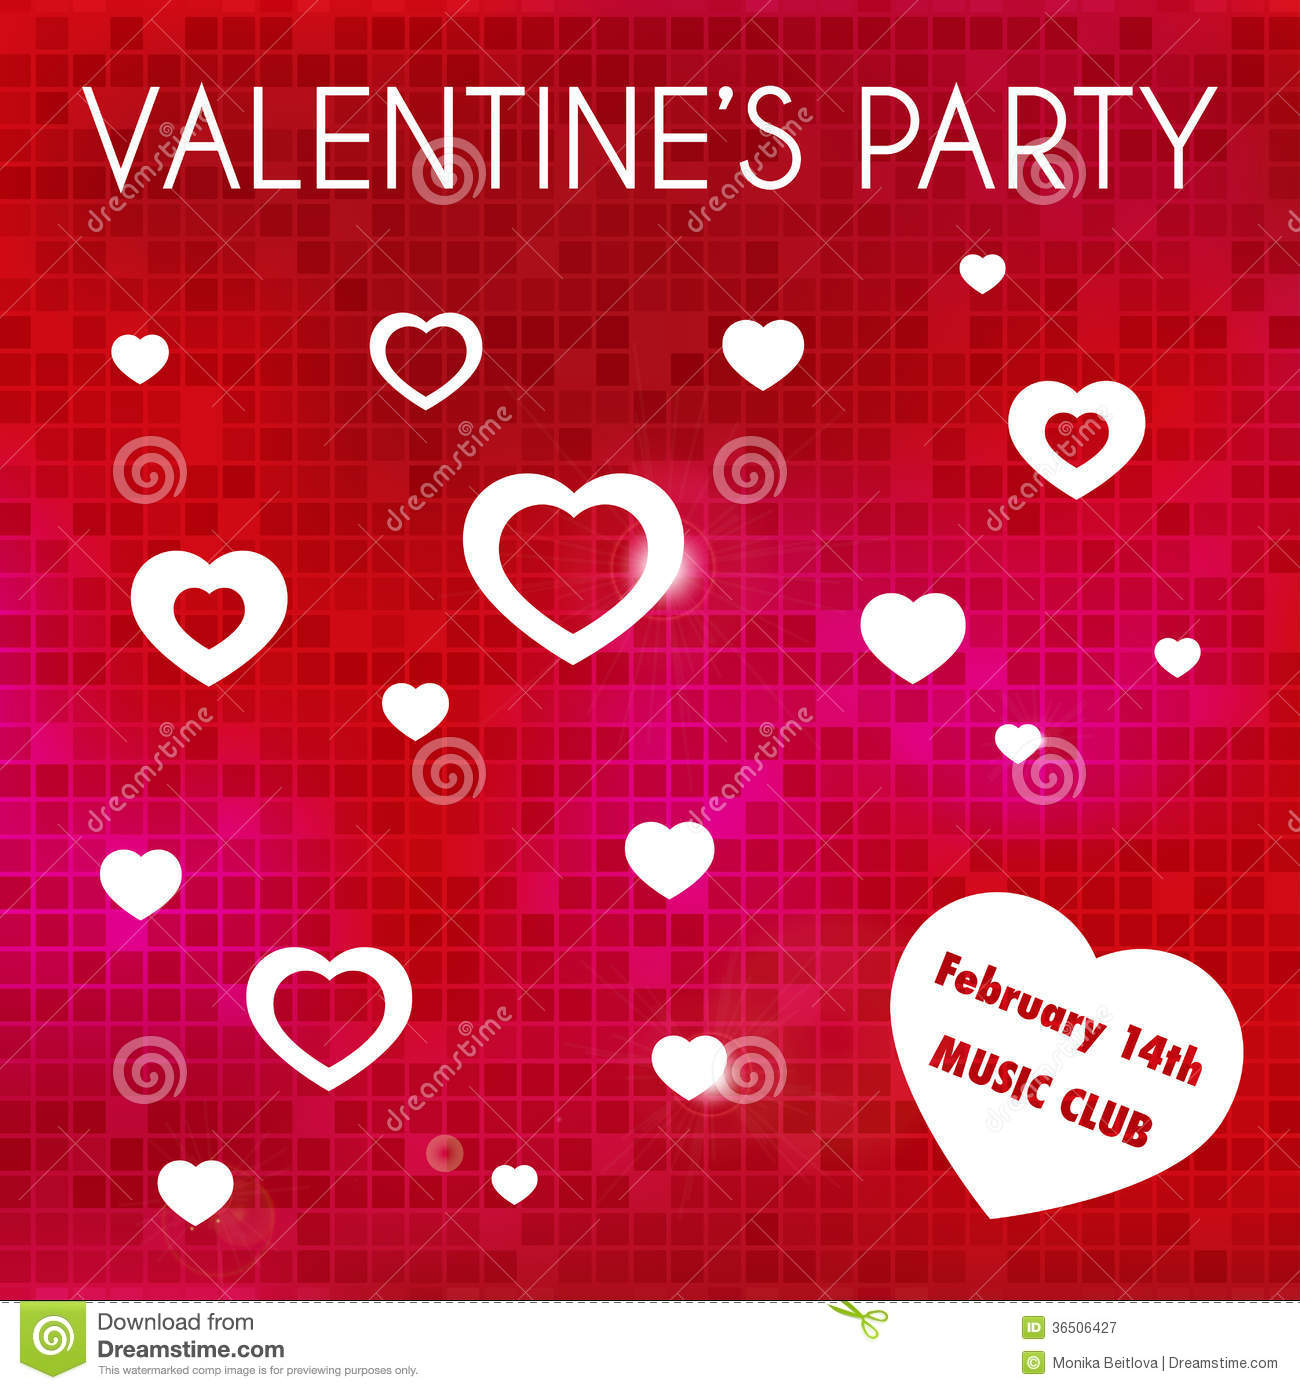 Valentine\'s Party Invitation Stock Vector - Illustration of modern ...